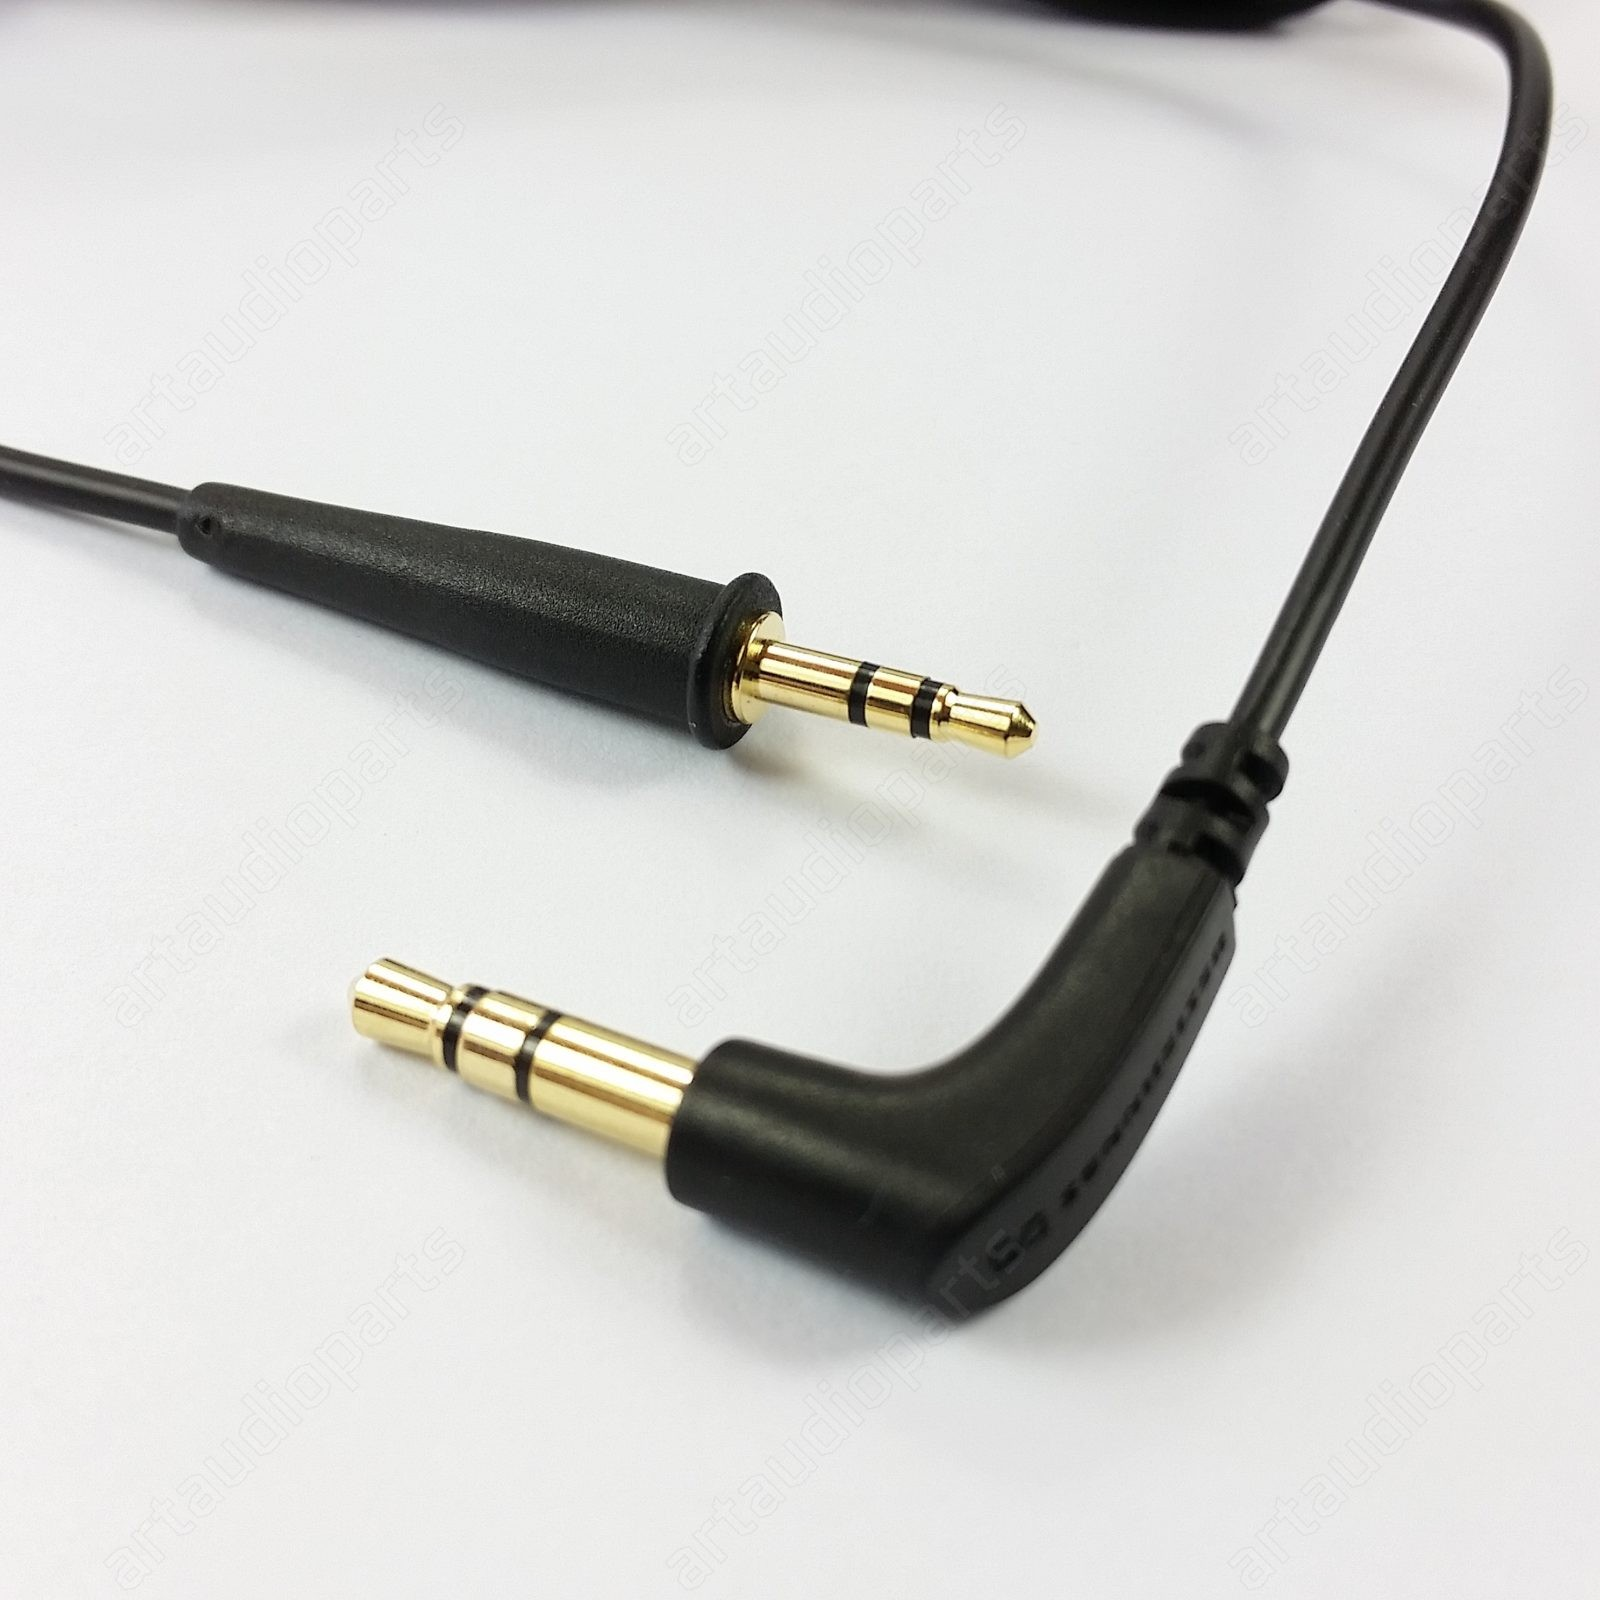 531406 Cable 2 5mm to 3 5mm jack plug for Sennheiser MM-400-X MM-450-X  MM-550-X